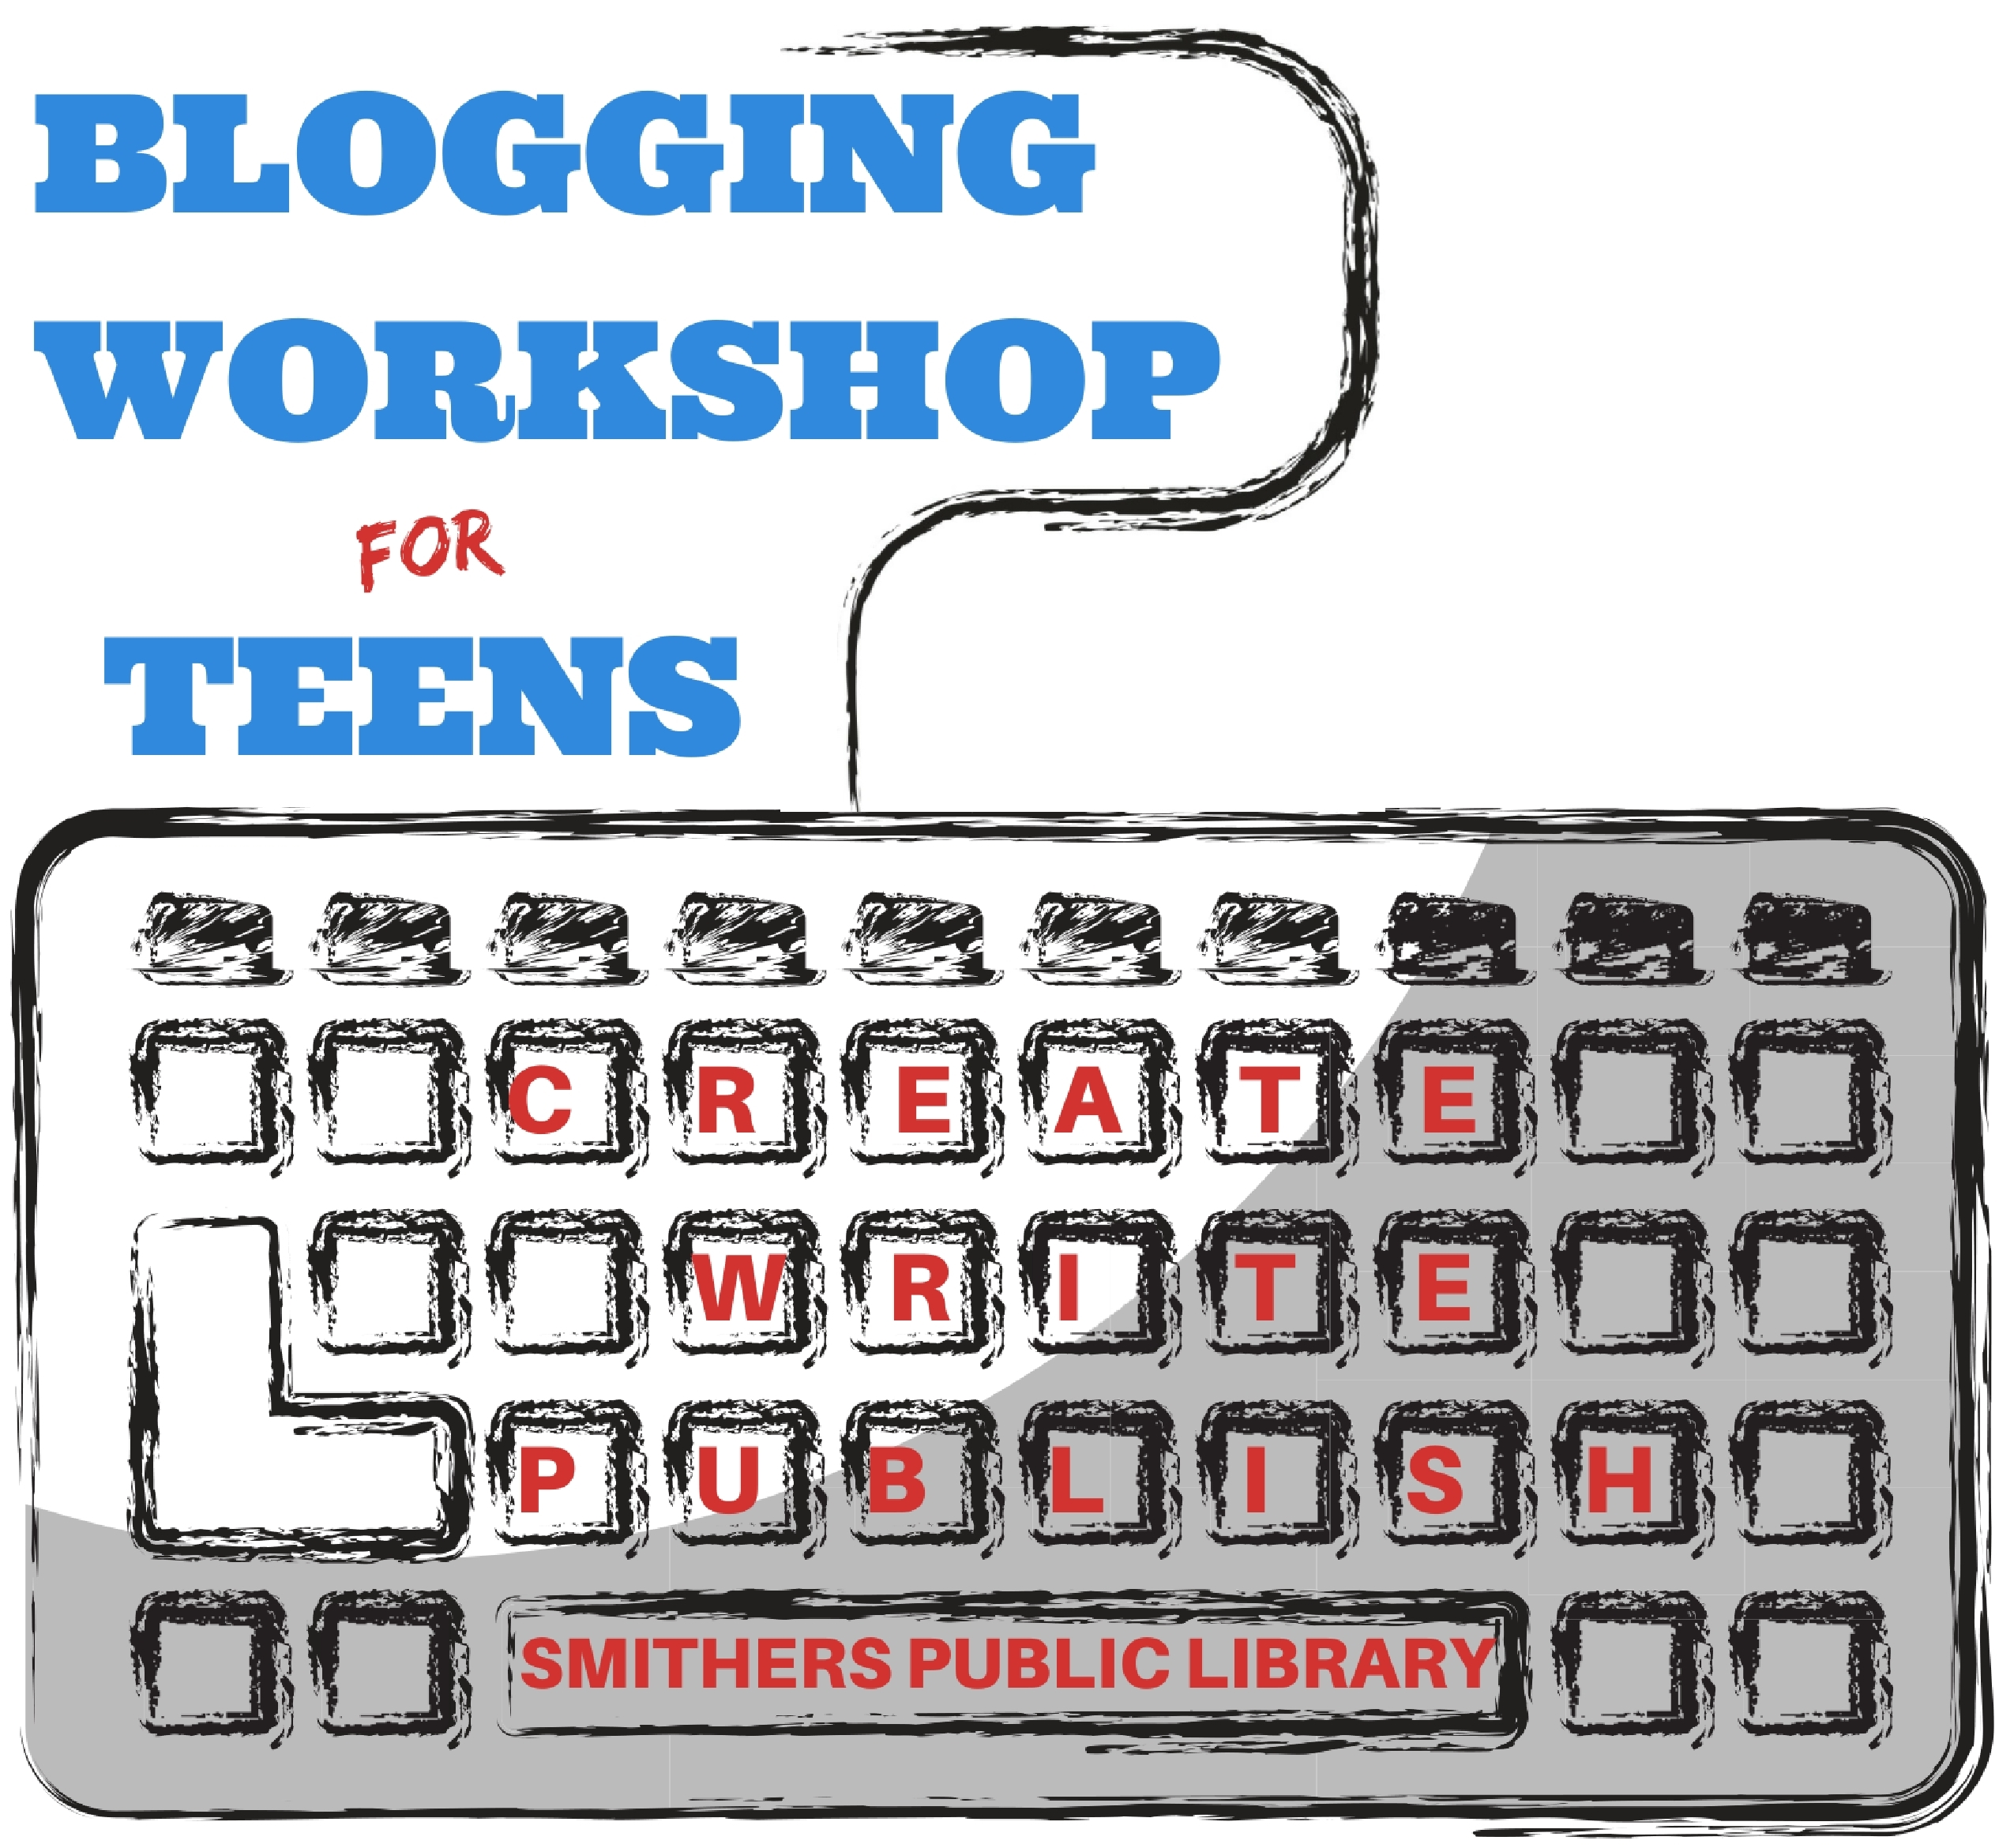 Blogging for Teens @ Smithers Public Library